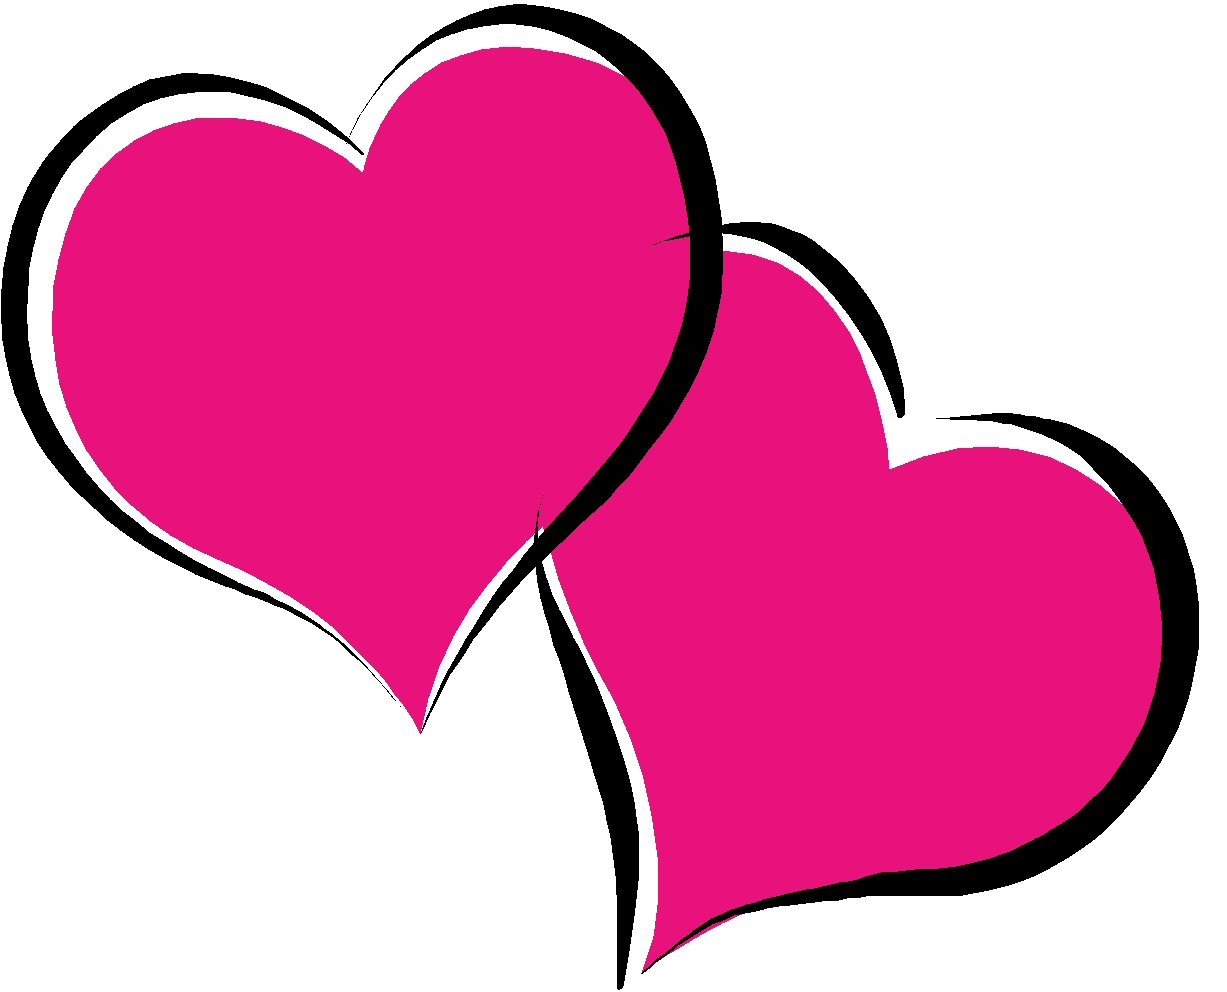 Pink love heart clipart - Cli - Love Heart Clipart